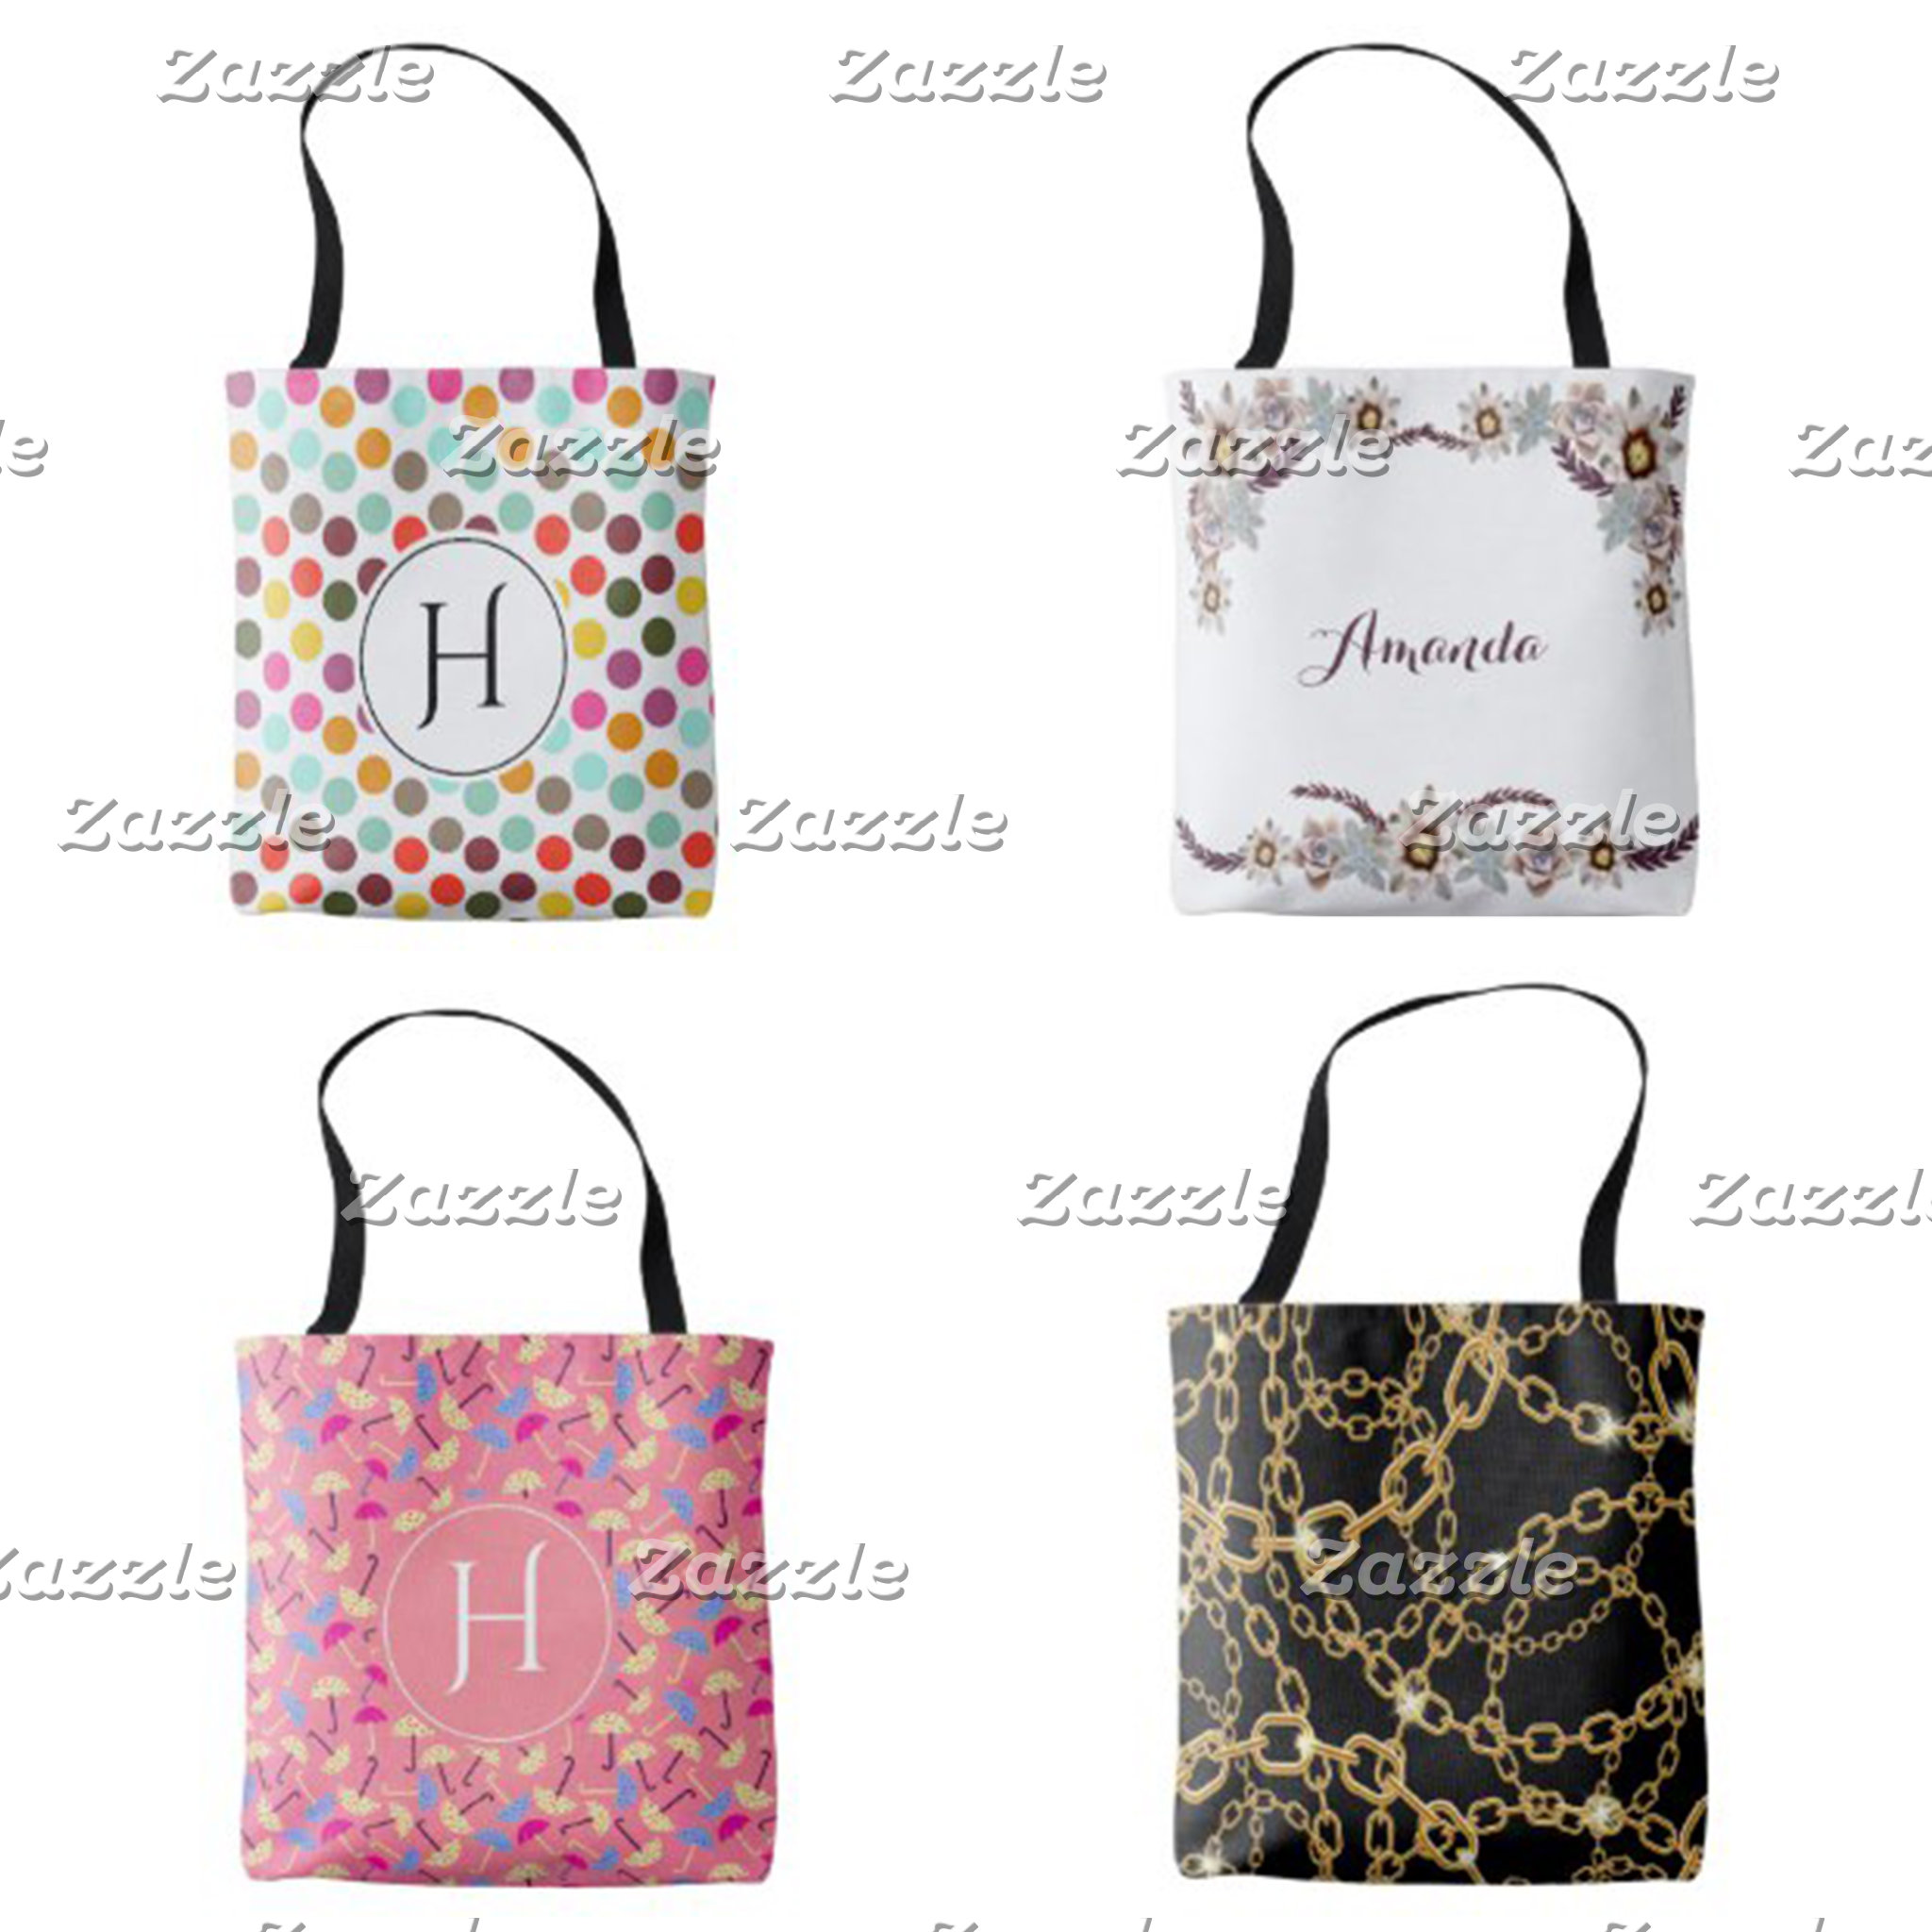 Totes, bags